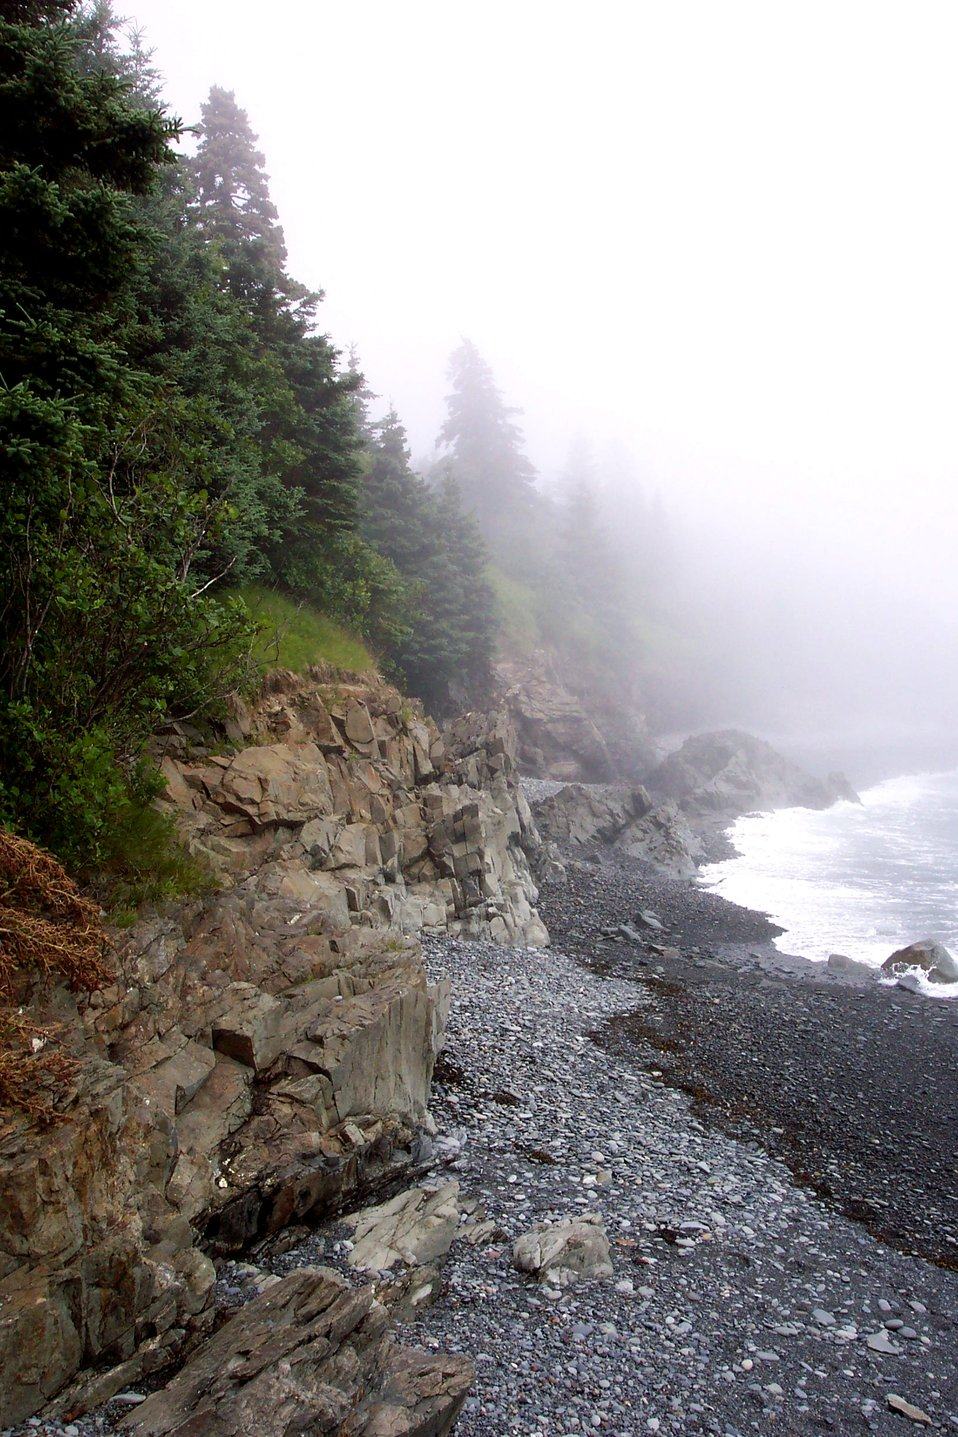 Cobble beach, rocky cliffs, and fog-shrouded evergreens at West Quoddy Head.